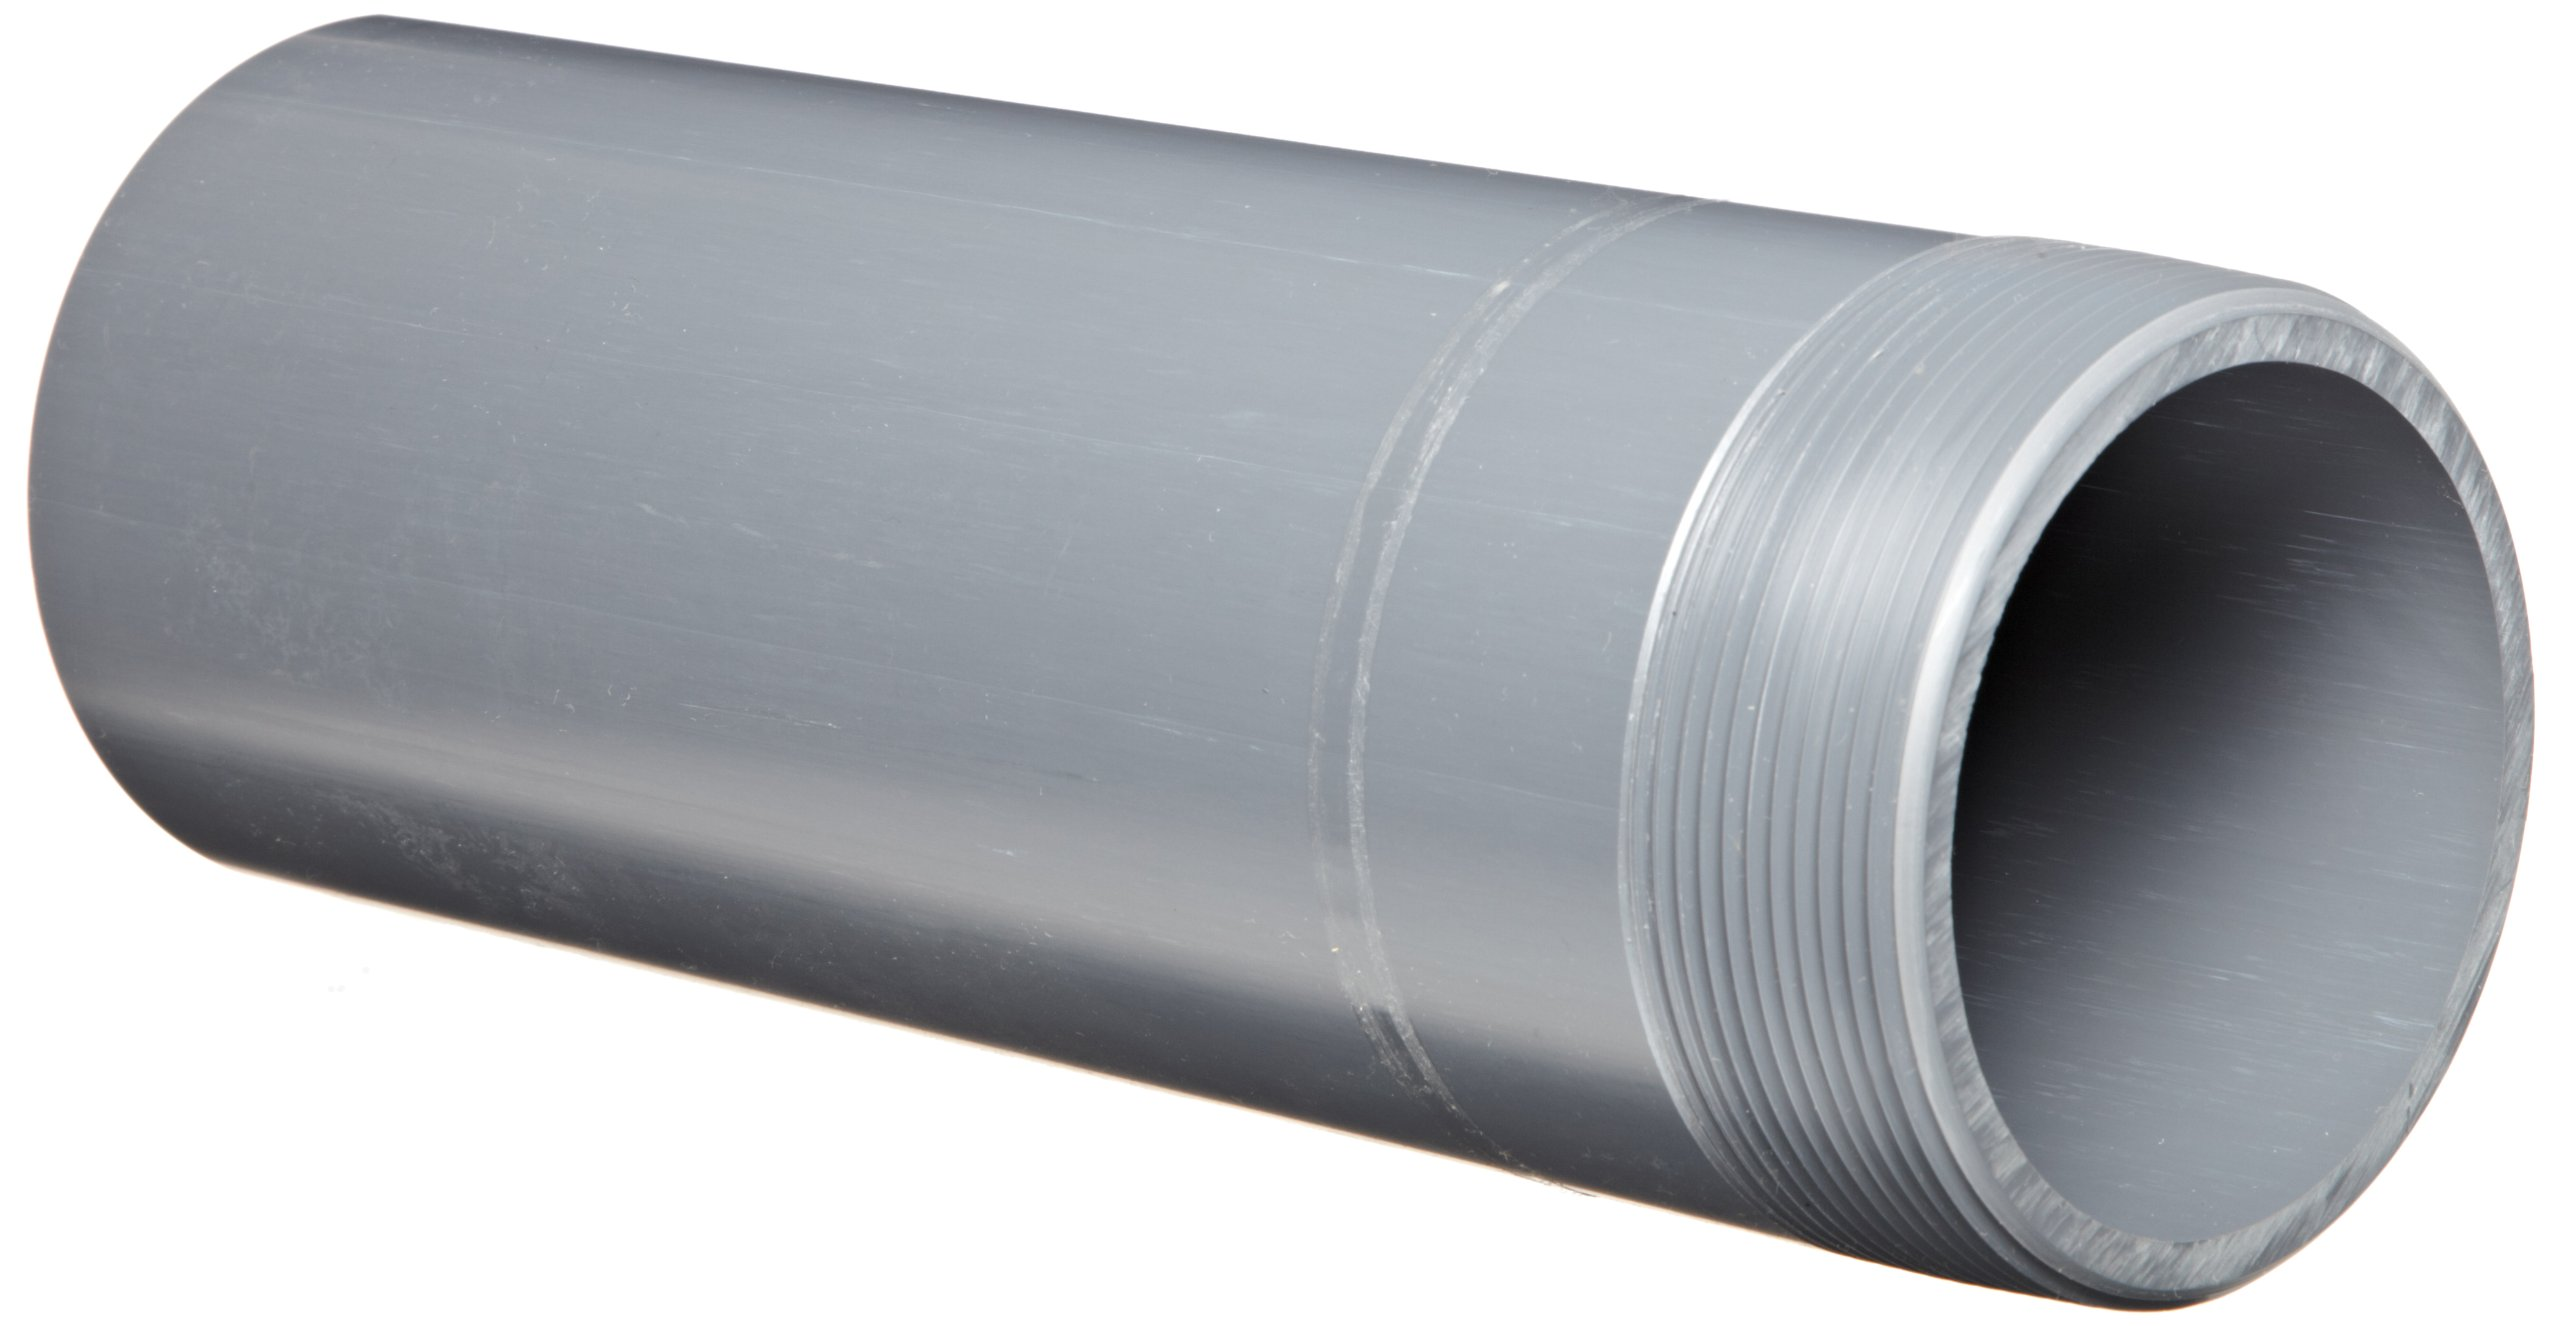 Spears 188N Series PVC Pipe Fitting, Nipple, Thread on One End, Schedule 80, Gray, 3'' NPT Male x Socket, 6'' Length